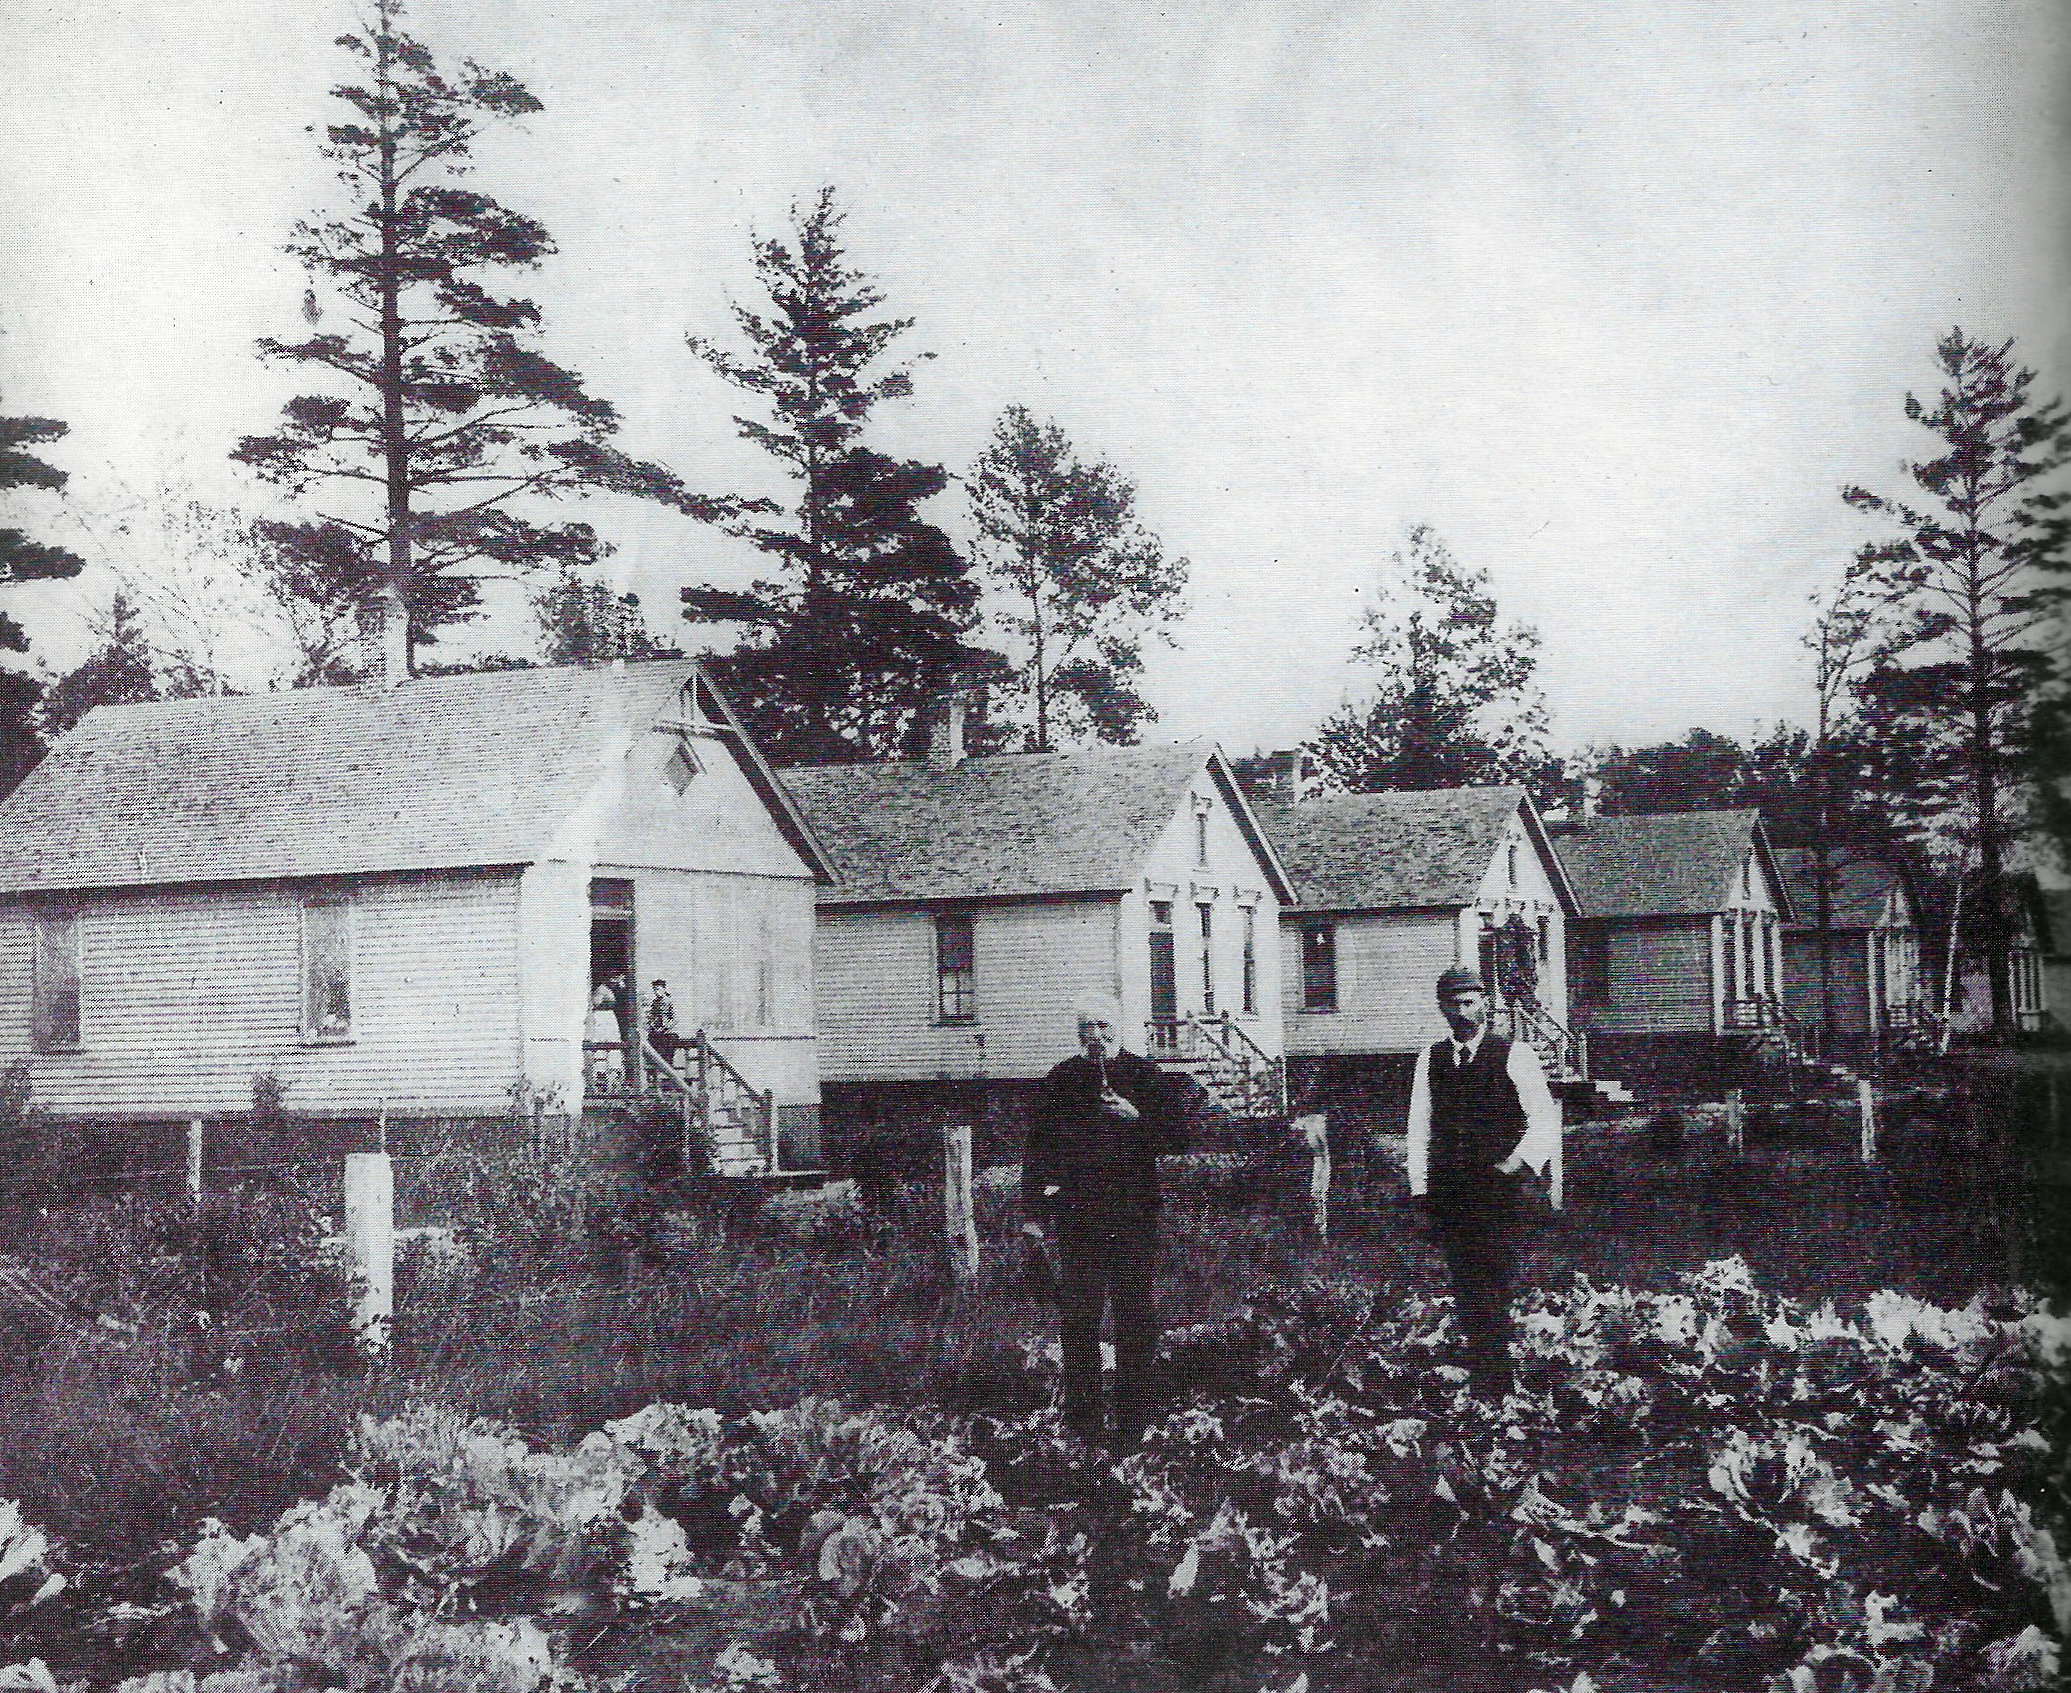 The Eggers family owned property along Berry Lake, which was located on Whiting's far east side on land that is now largely a part of the BP Refinery. The Eggers operated a business on Berry Lake which sold ice that they cut from the lake in the winter months. When Standard Oil arrived in 1889, they used some of the money they made from the sale of their land to the refinery, to build seventeen houses on their remaining land on Berry Lake. Henry Eggers Sr., who was born around 1817 in Germany, is in the center of this photo in front of the houses he had built. To his side is believed to be Henry Eggers Jr., in a photo from the 1890s.